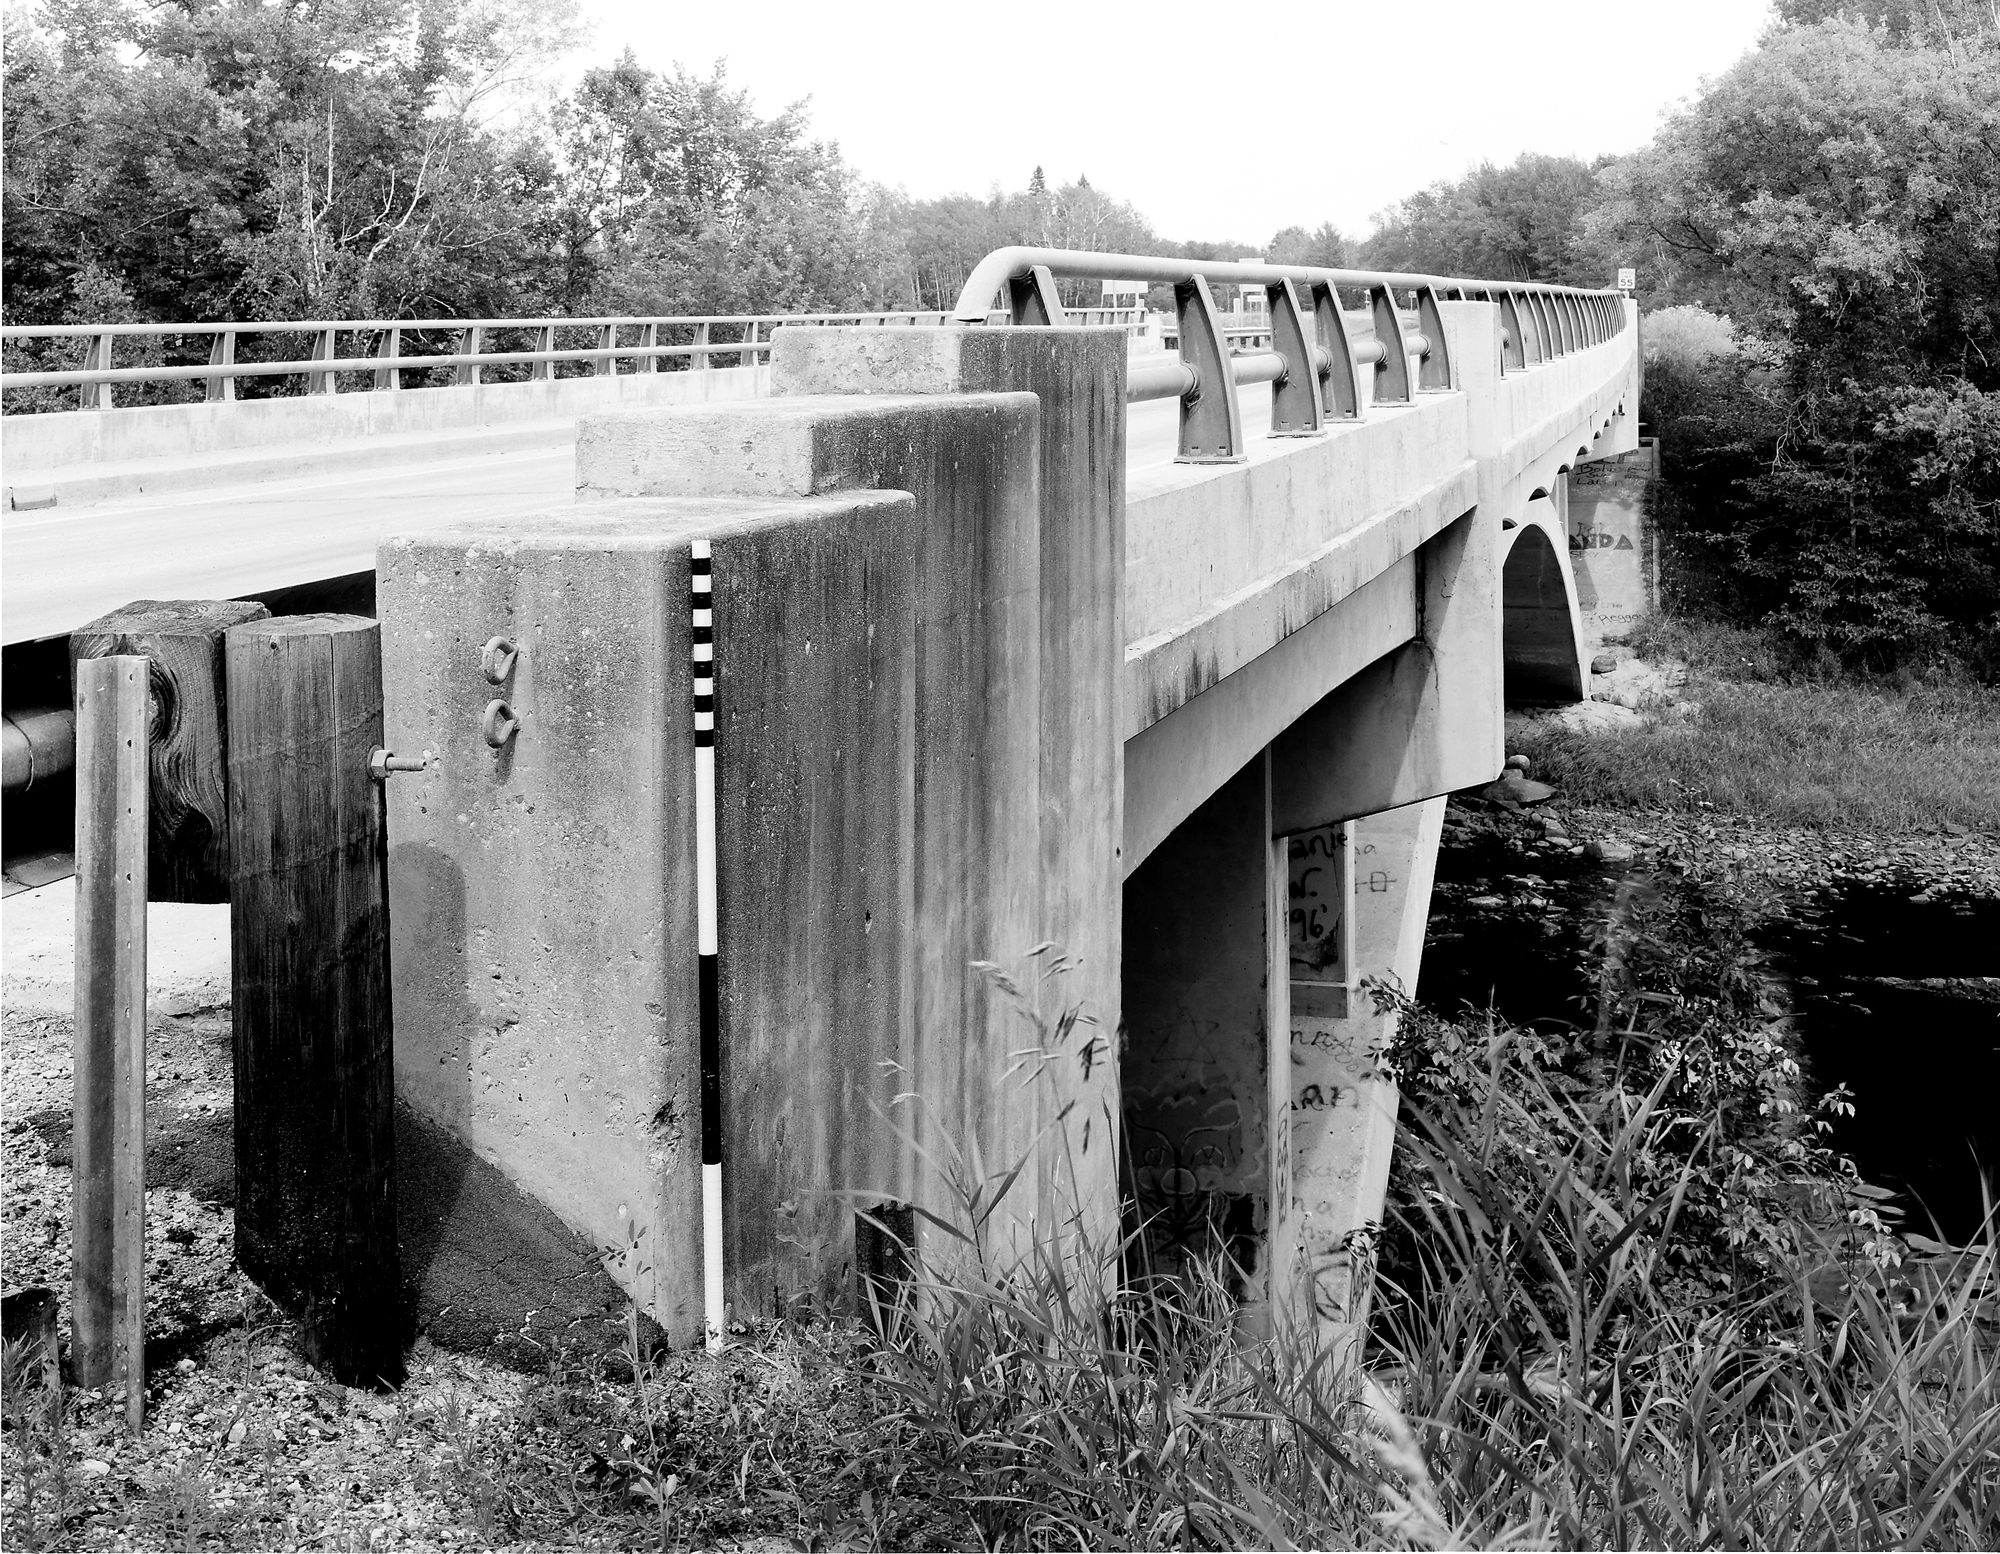 Bridge 5557 - MHPR LW-CLE-001-12 (Please credit Daniel R. Pratt and the Minnesota Historic Property Record)